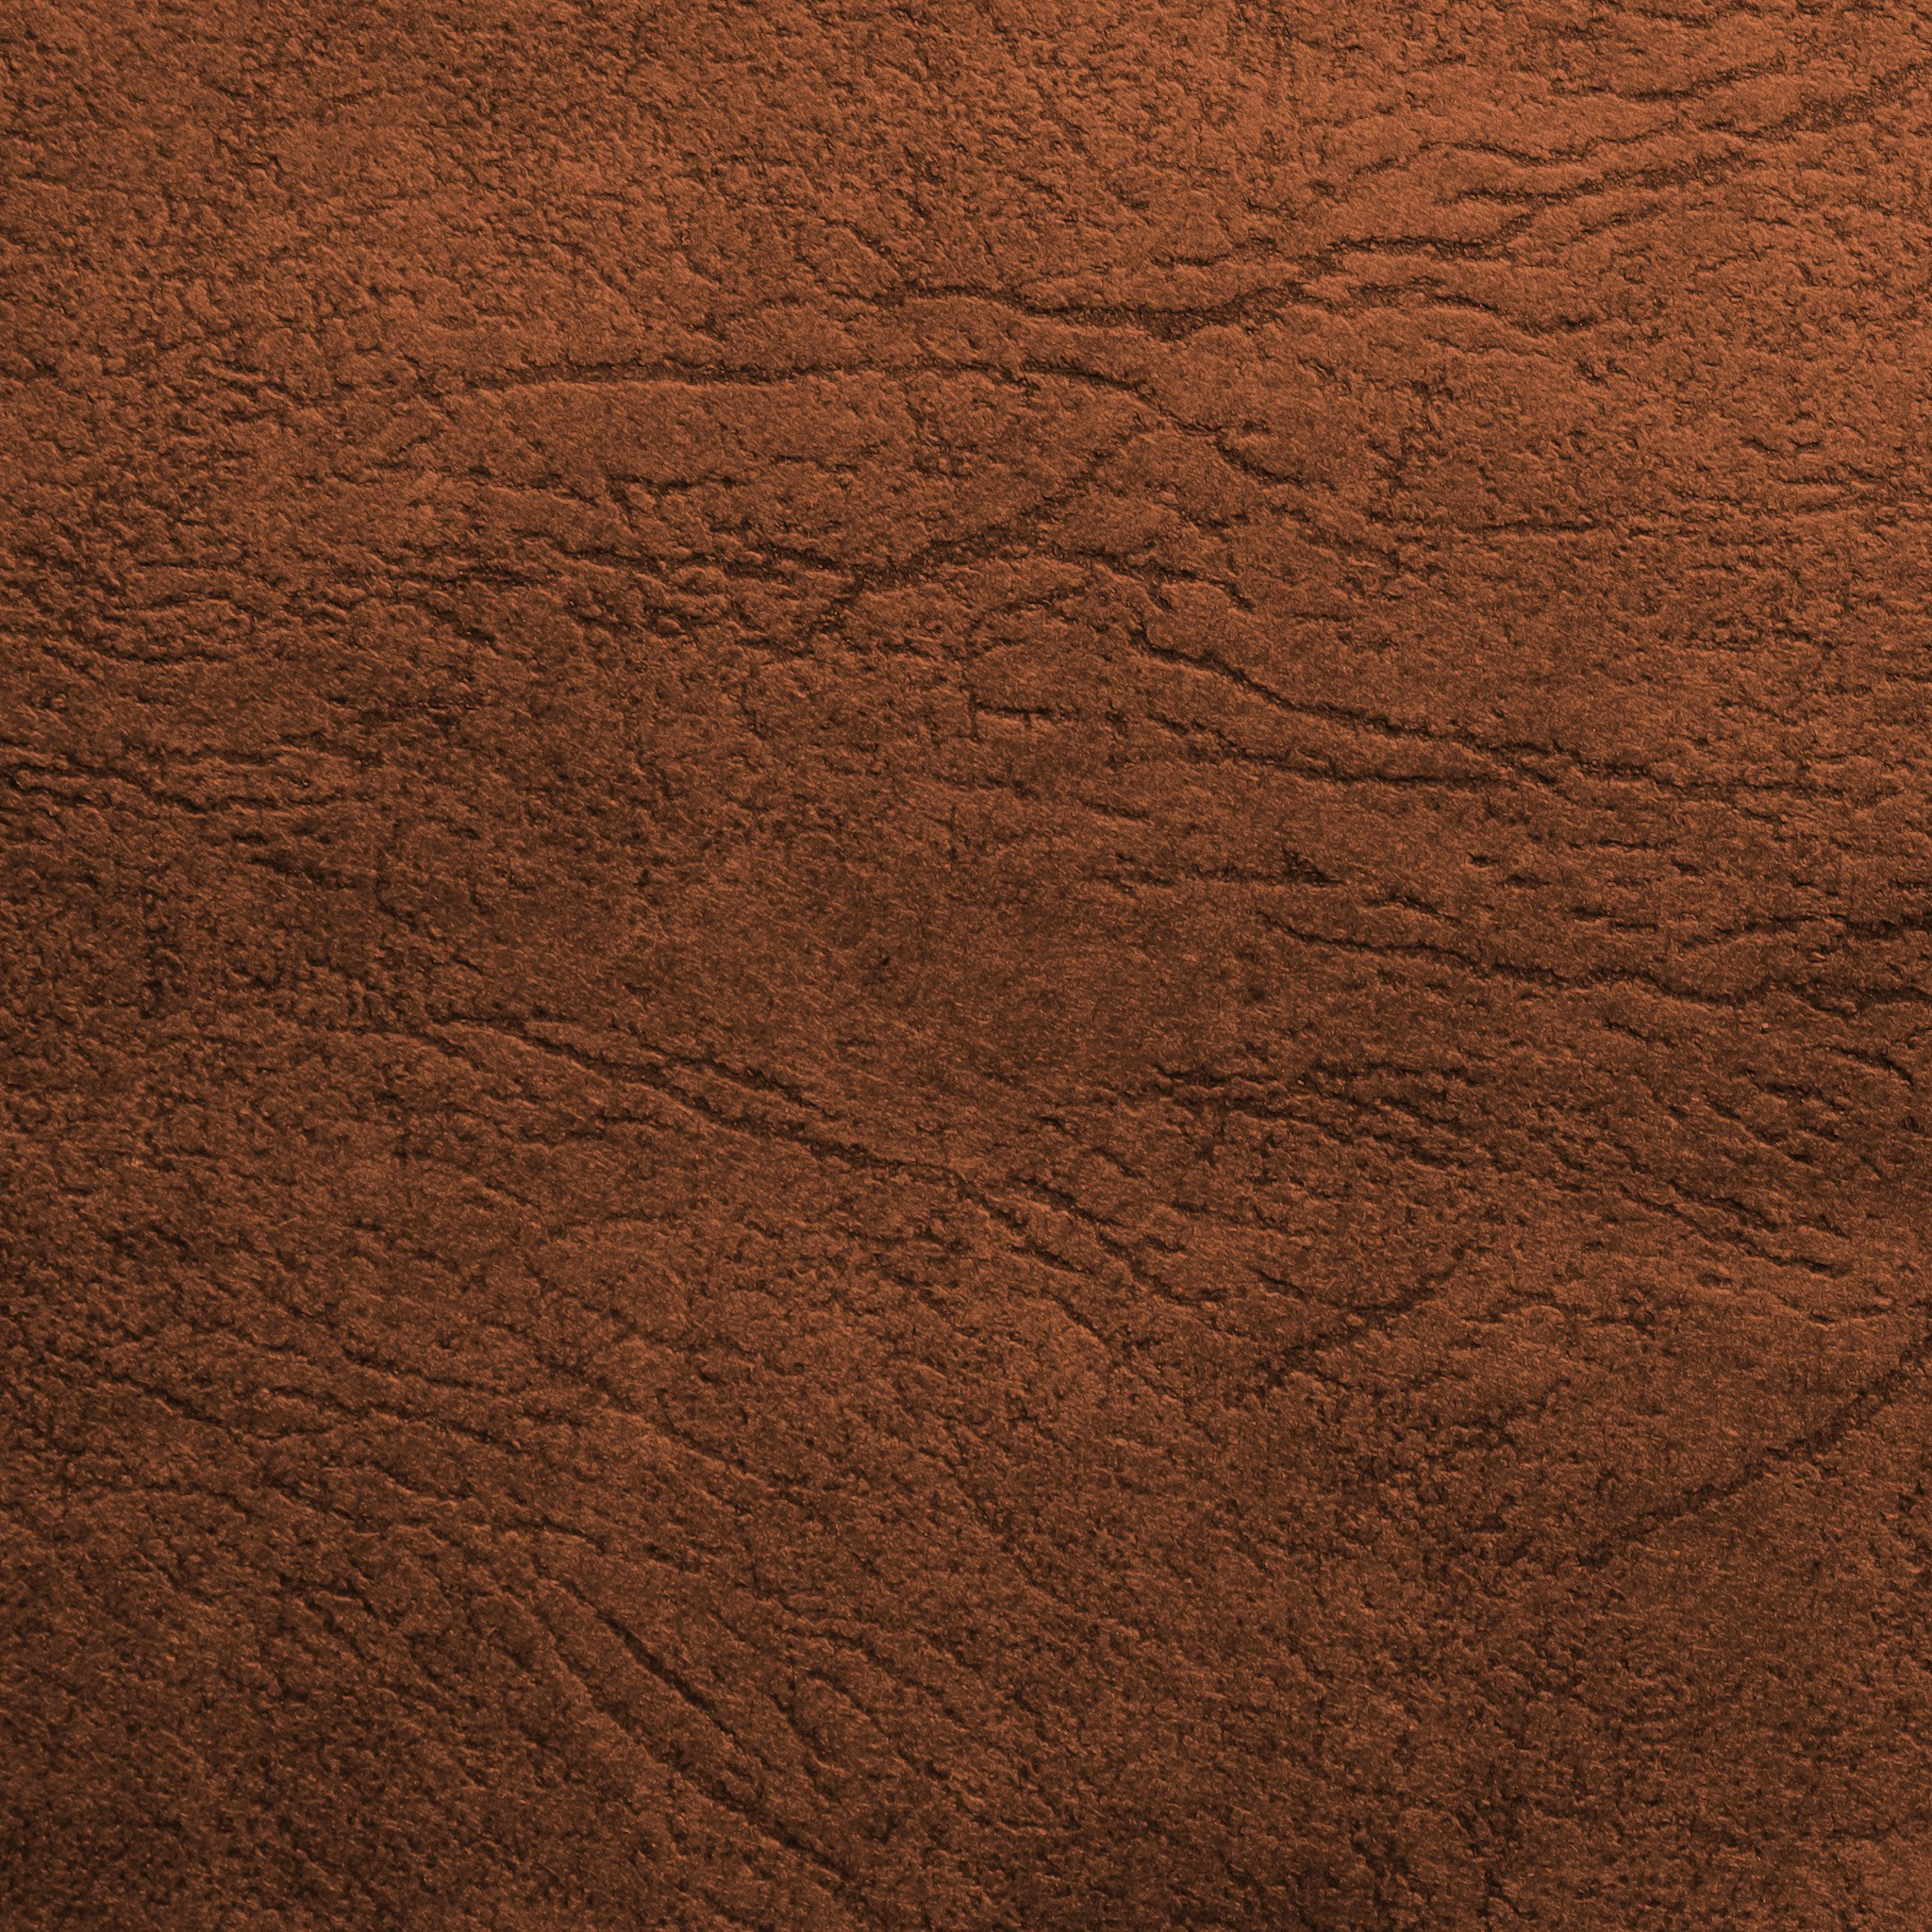 Brown Wallpaper Png - Weekend Wallpapers: The Rich Look of Corinthian Leather for iPad